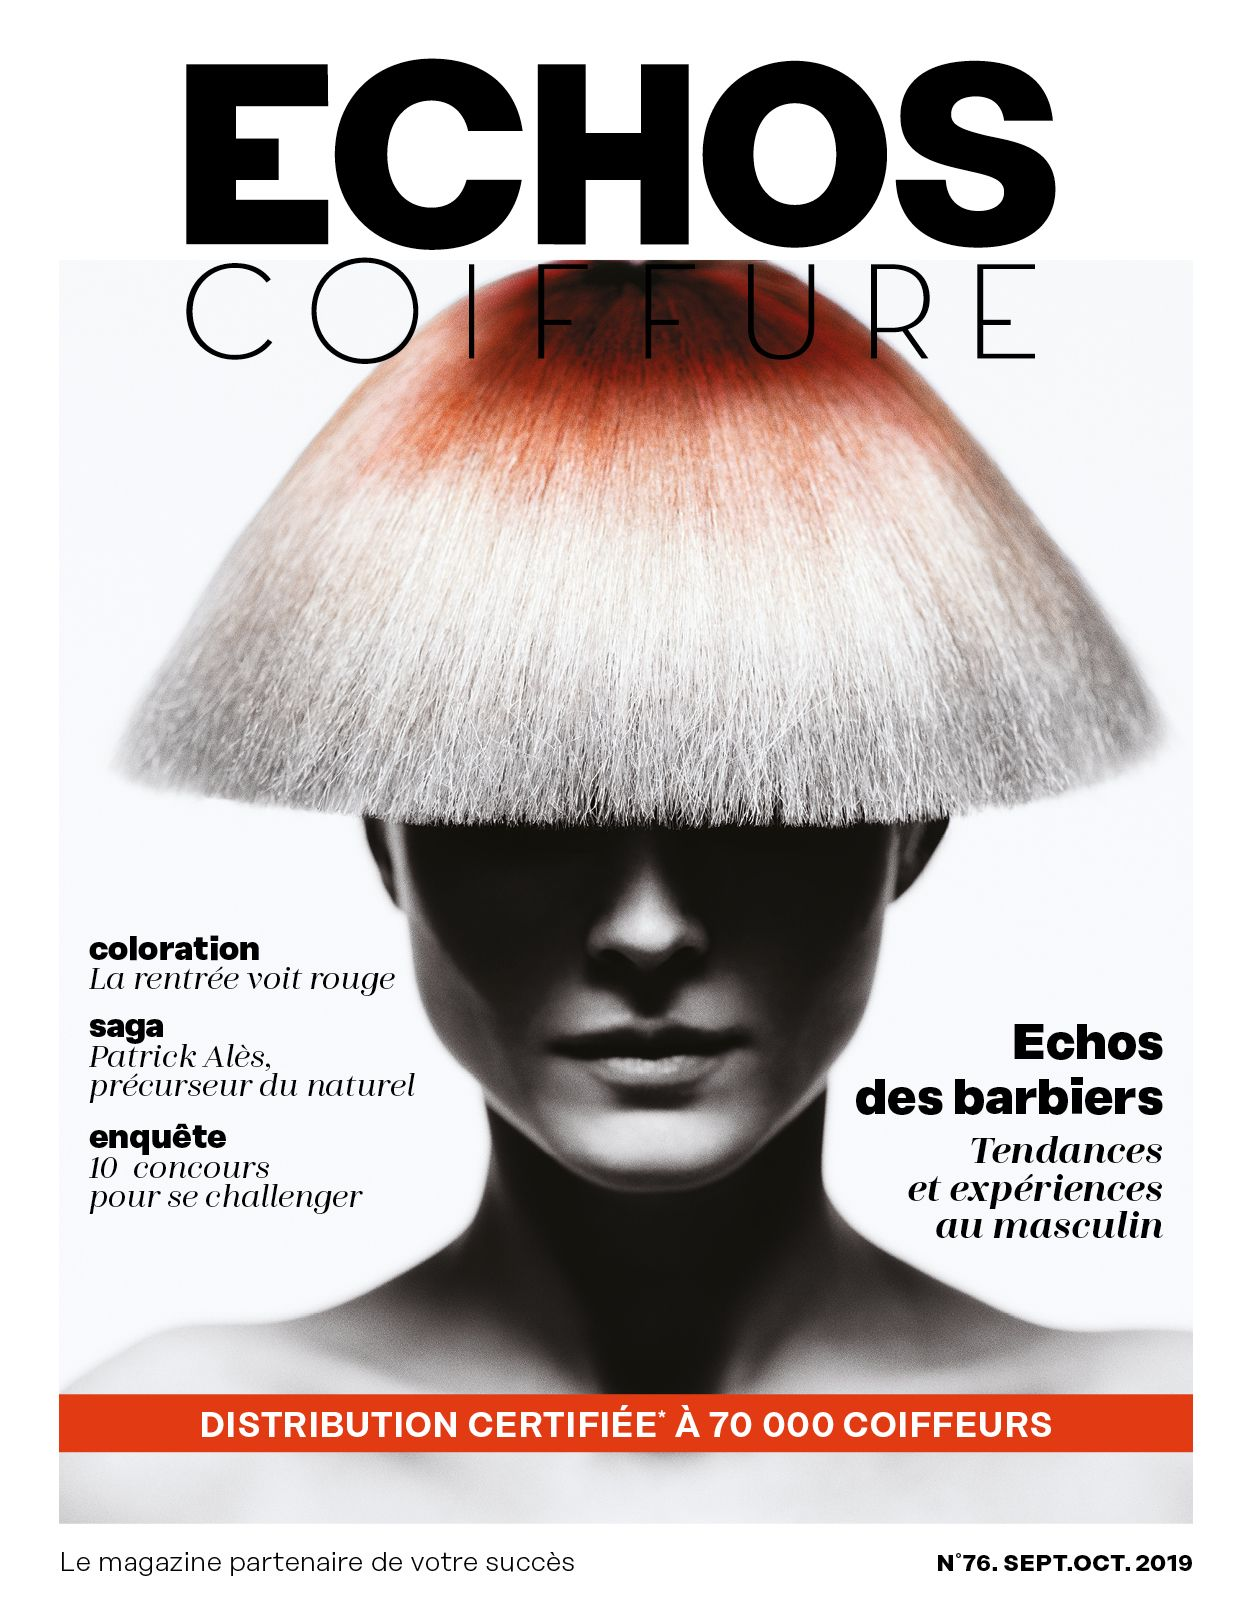 Magazine Echoscoiffure France 76 Photo Nicolas Jurnjack C Nick Norman Coiffeur Coiffure Echo